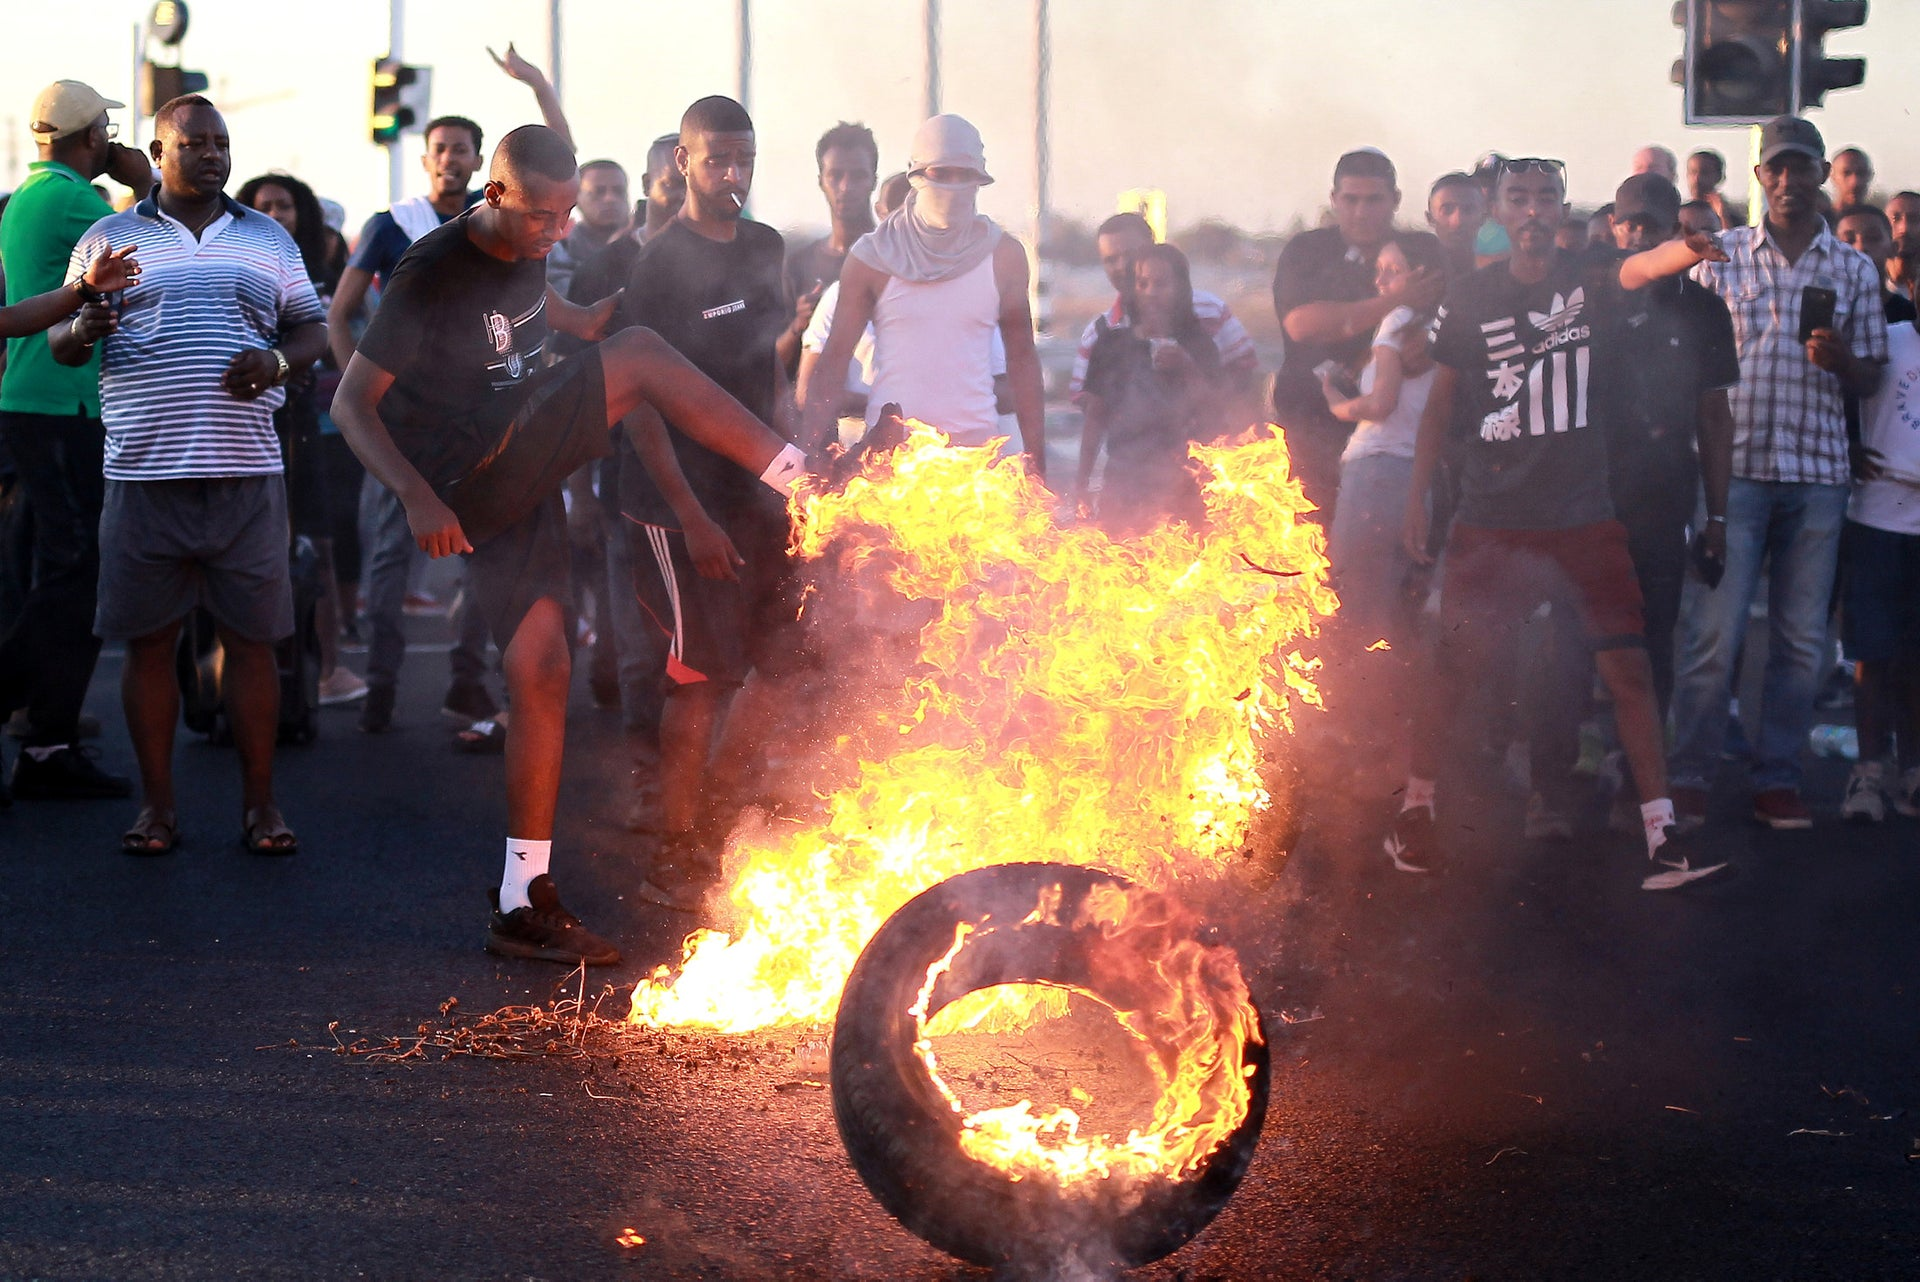 Protesters are burning a tire, as part of a the Ethiopian Israeli protest taking place across the country.